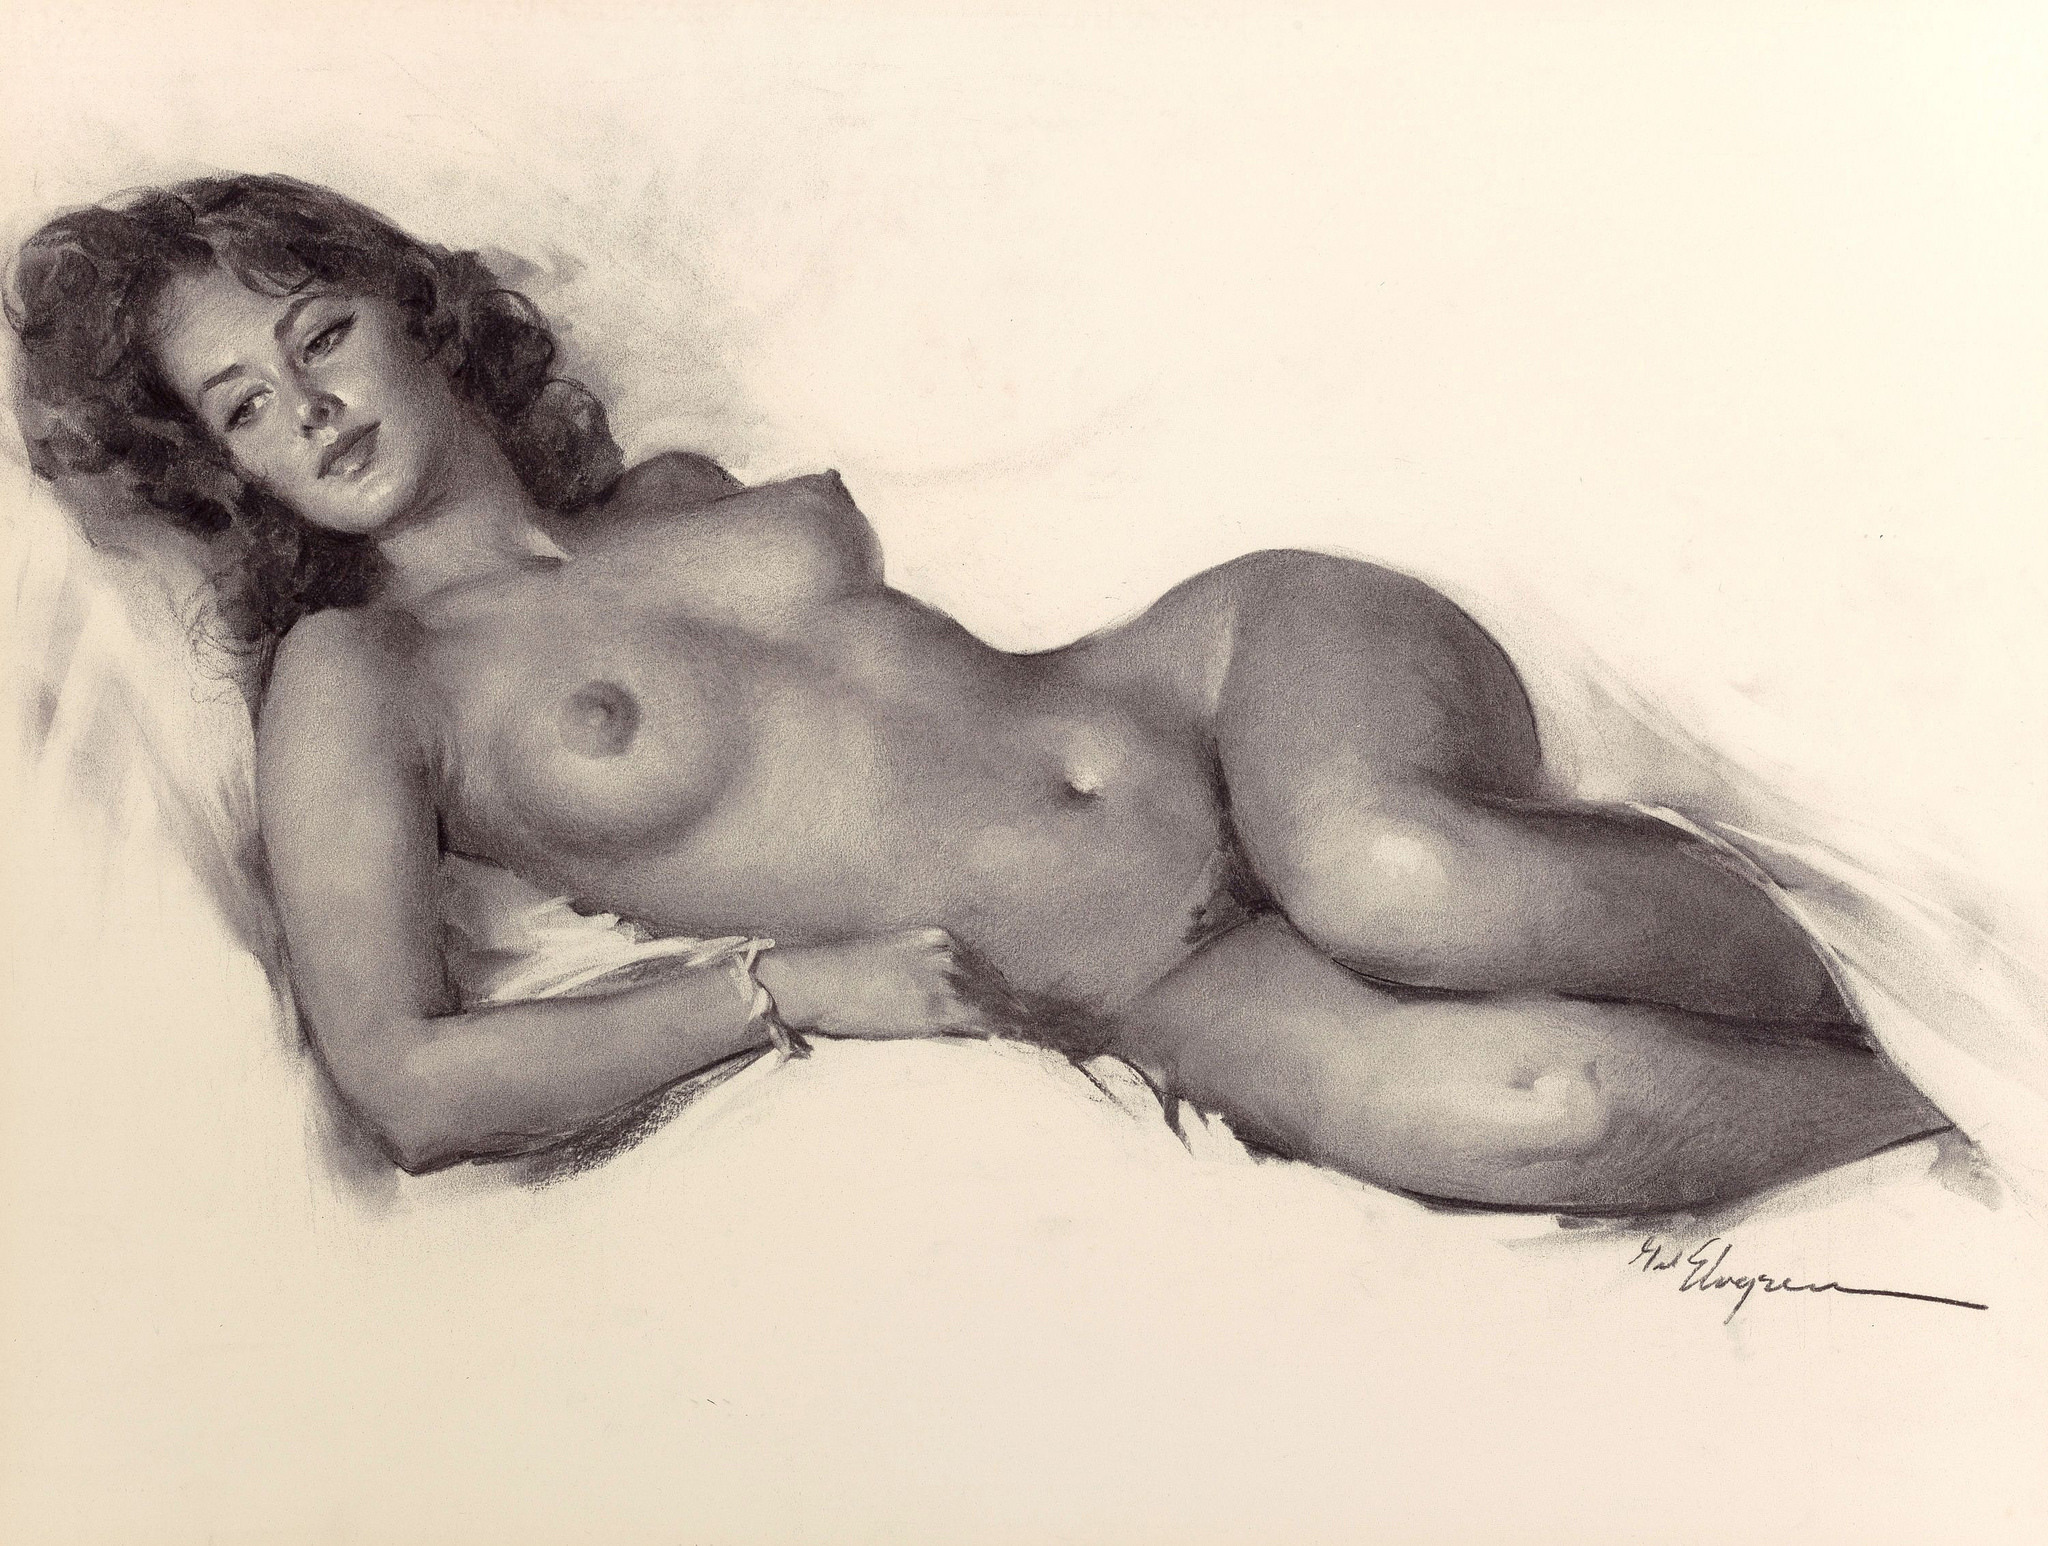 Naked chick sketches